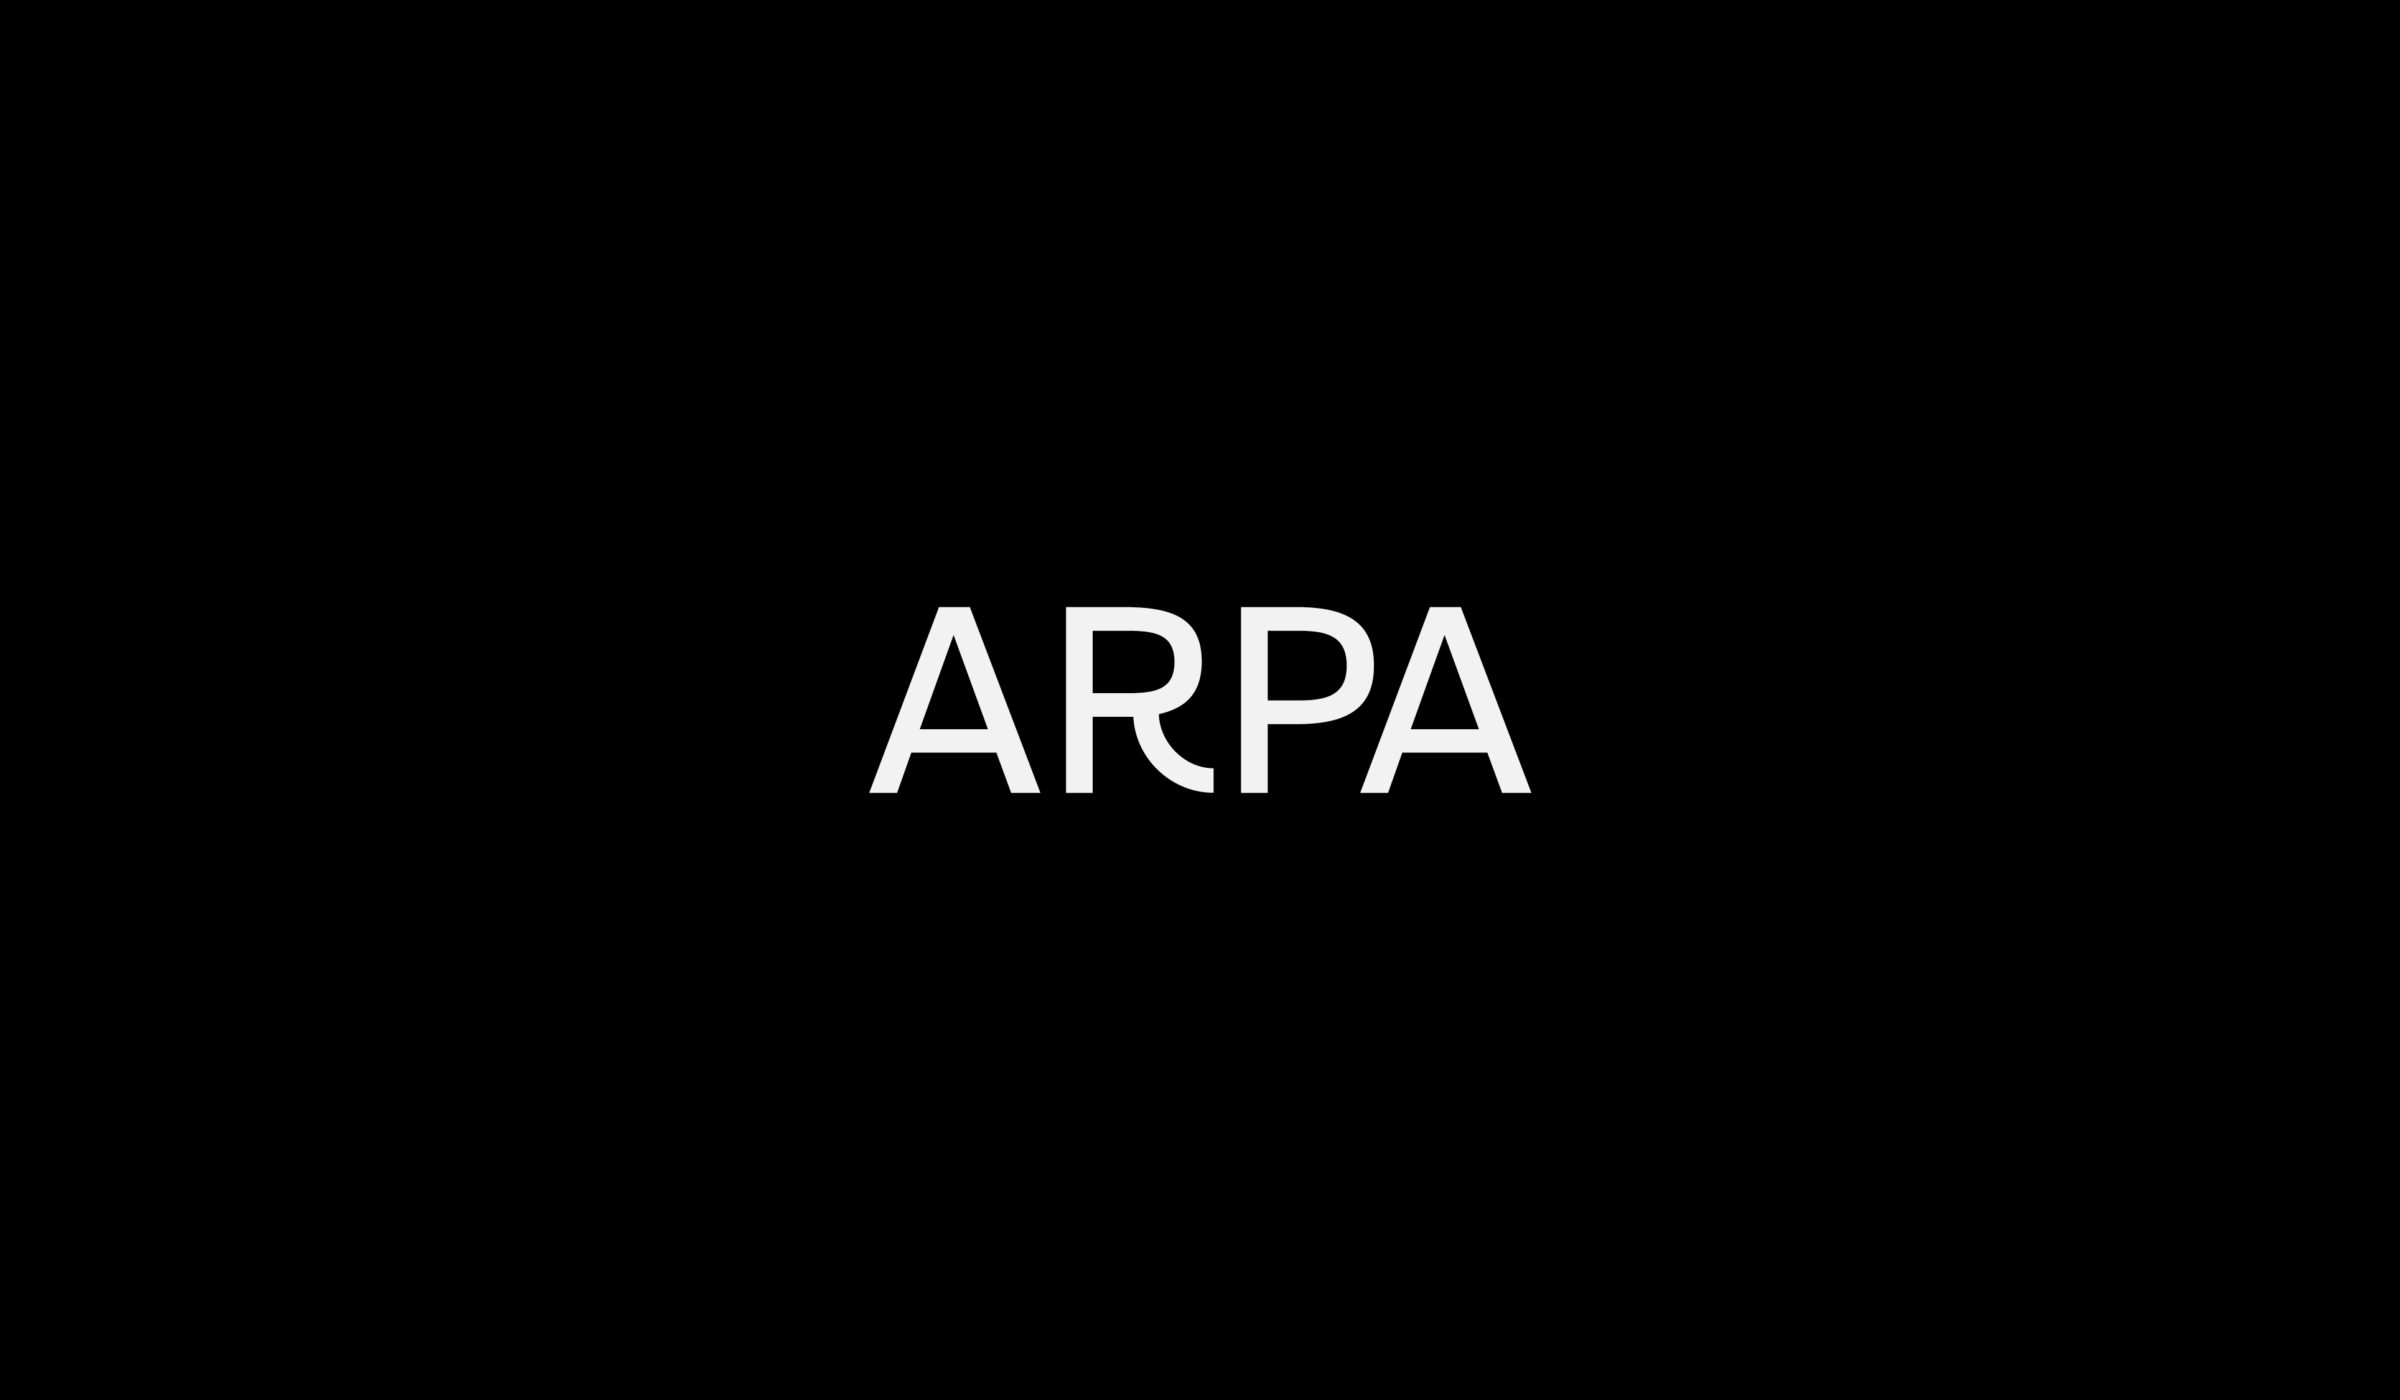 FOLCH - New review of Arpa Editores